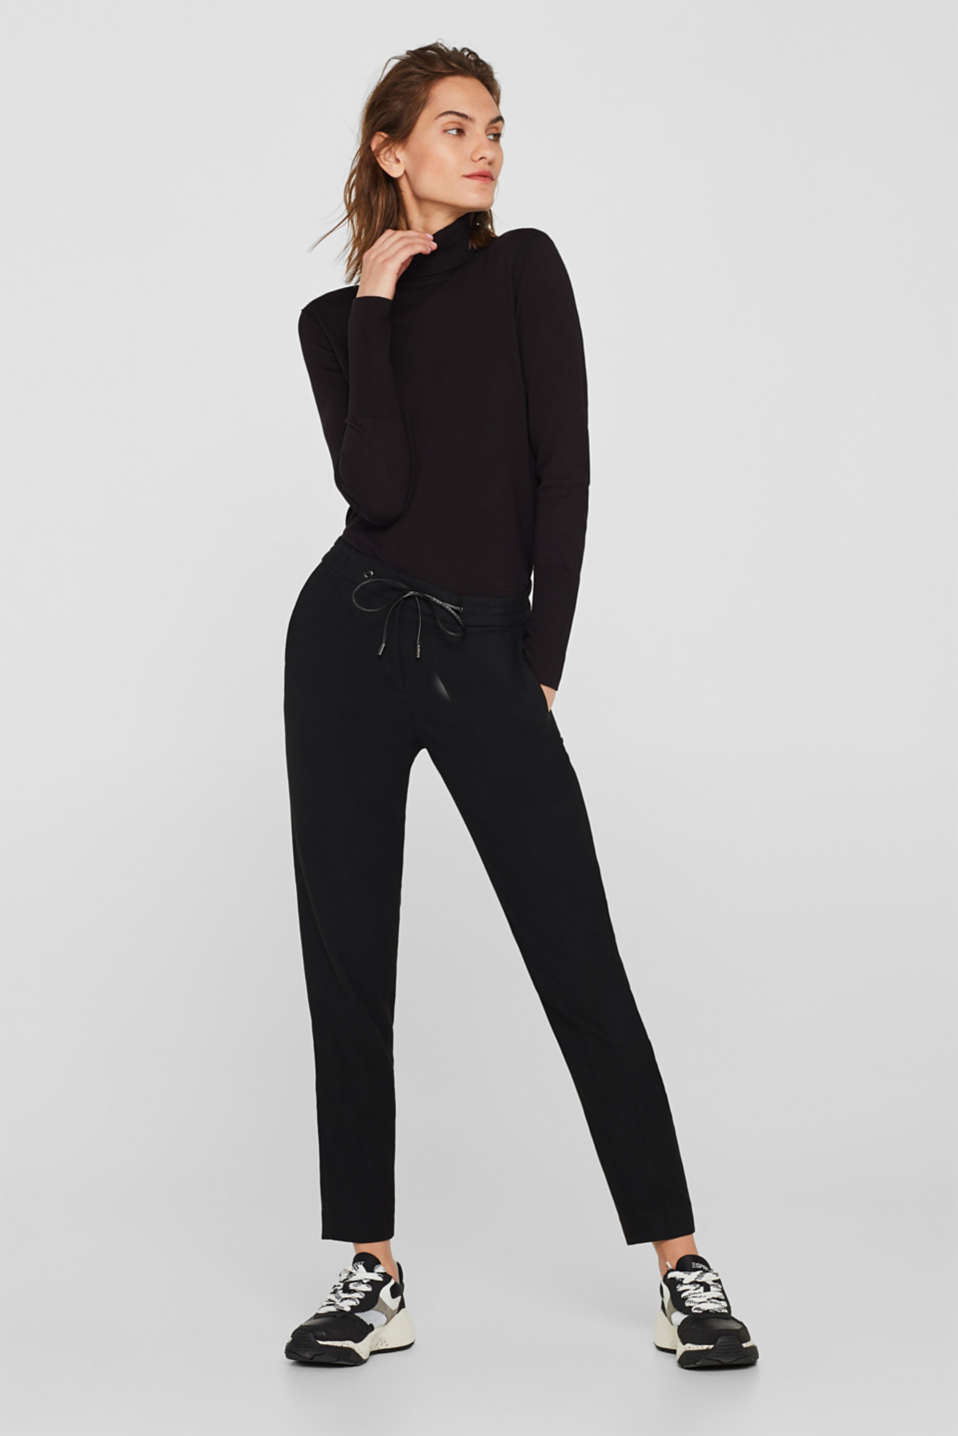 Esprit - Flannel stretch trousers in a tracksuit bottom style